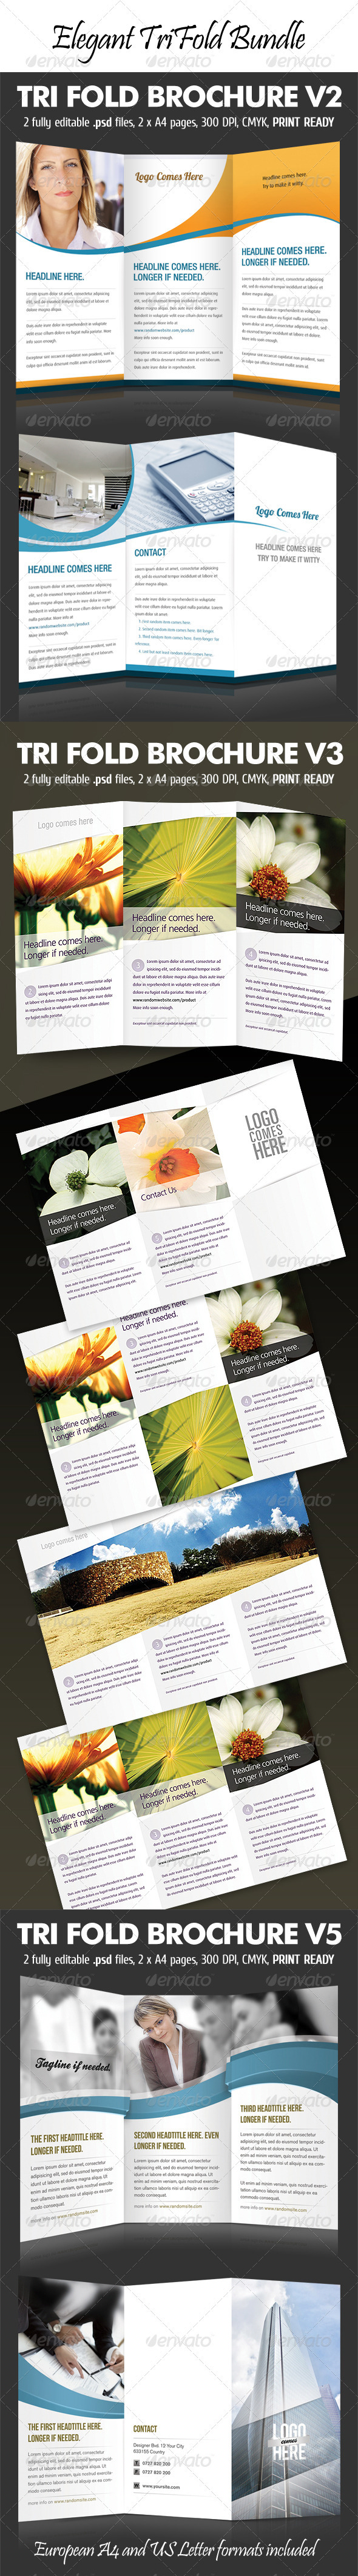 GraphicRiver Elegant Tri-Fold Bundle 515339